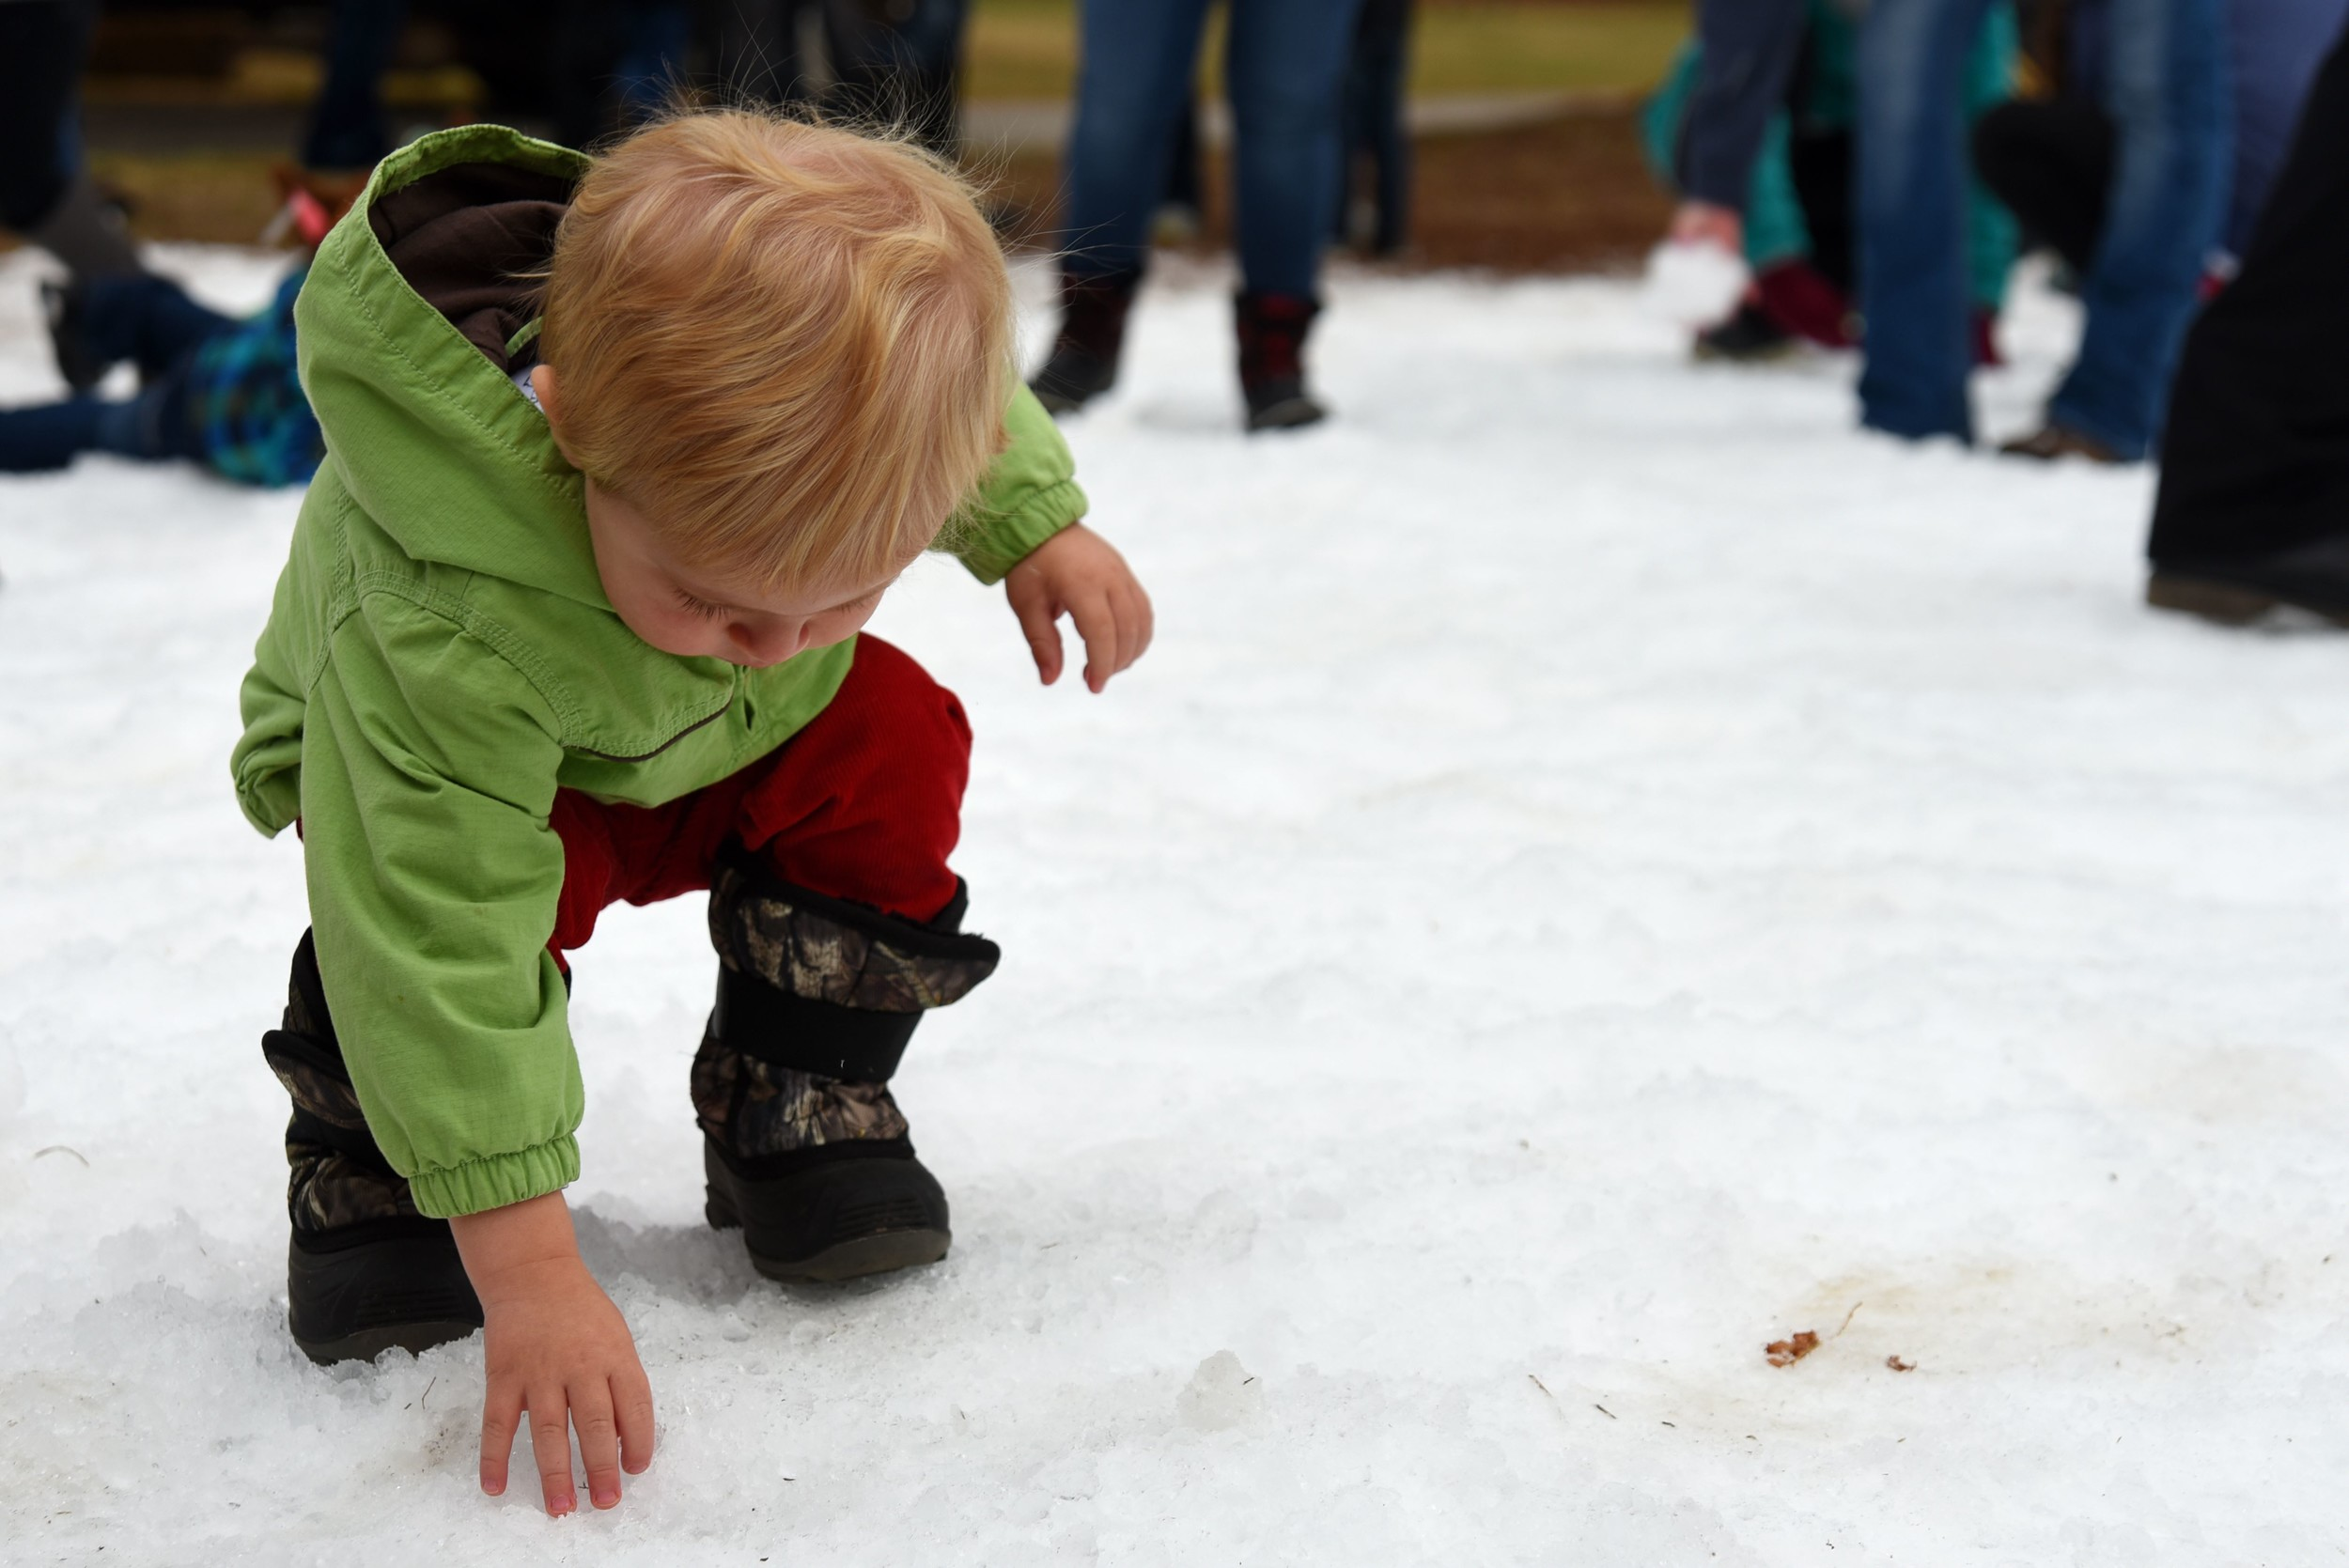 U.S. Air Force photos by Airman 1st Class Kathryn R.C. Reaves / Special to the Sumter ItemA Team Shaw child touches snow during the 20th Force Support Squadron's Frosty Fest at Shaw Air Force Base. Contractors created snow for the event to allow individuals the opportunity to play in it who may not otherwise get the chance due to the local climate.